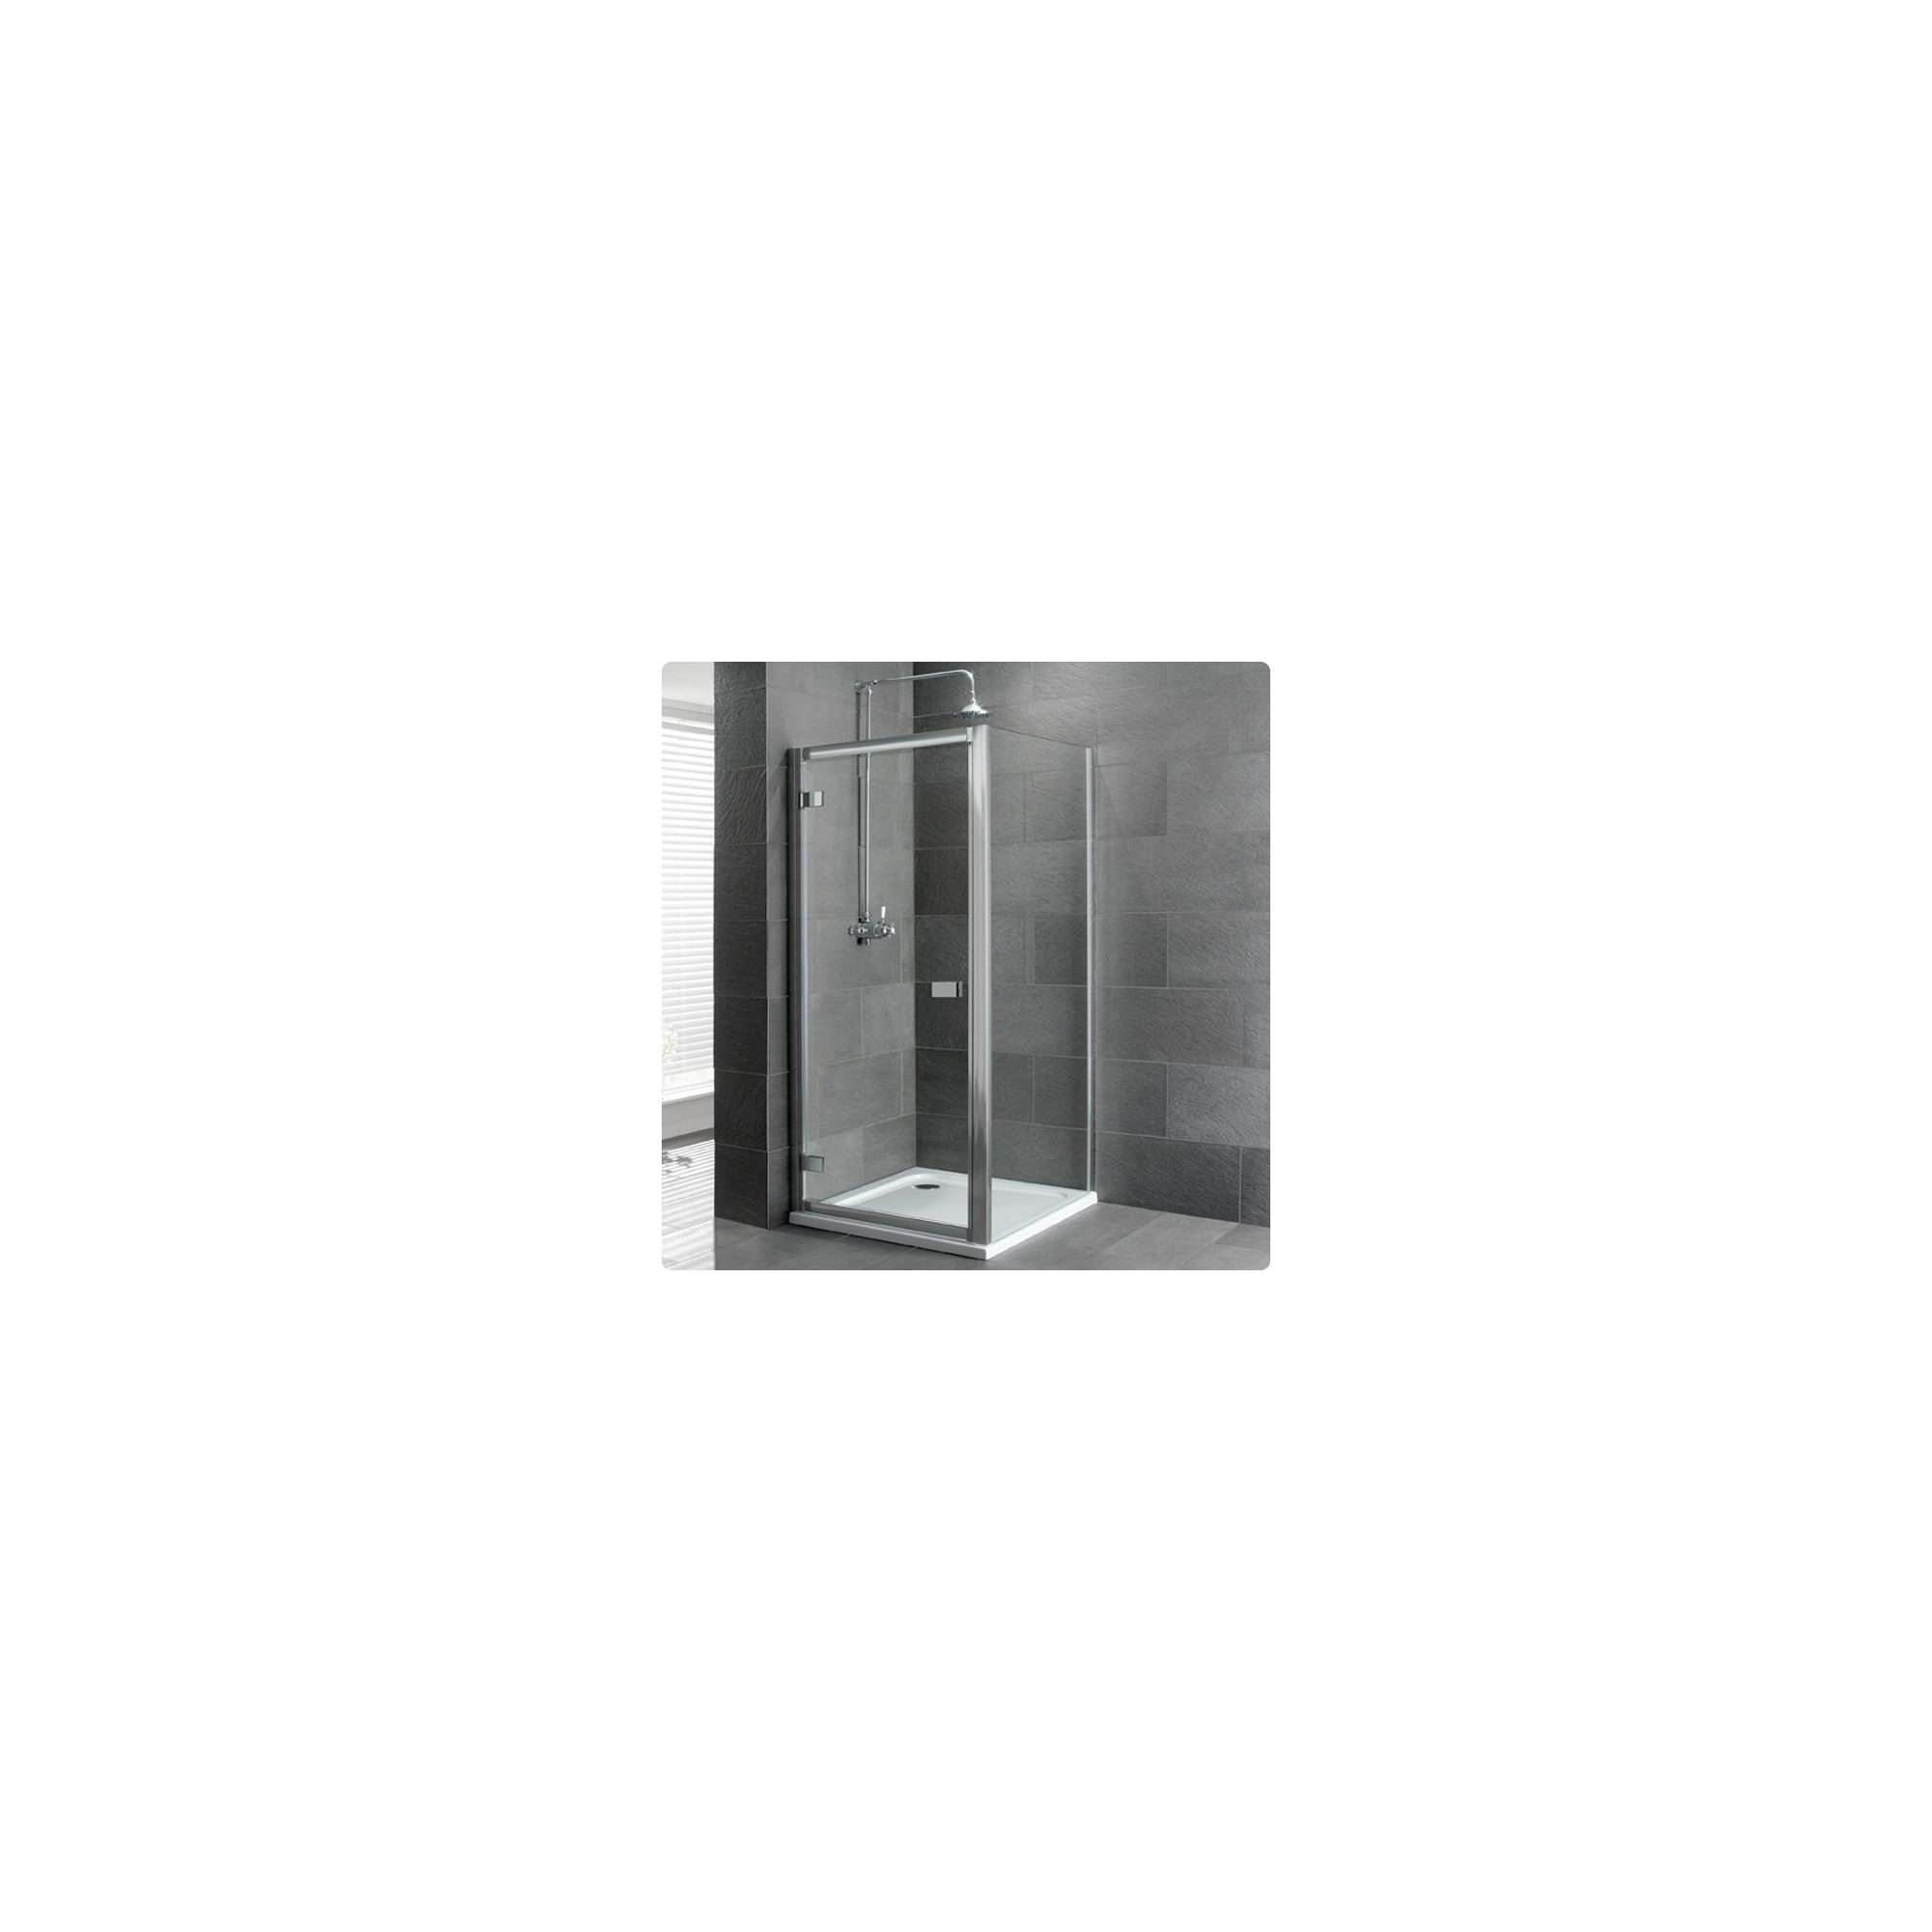 Duchy Select Silver Hinged Door Shower Enclosure, 900mm x 900mm, Standard Tray, 6mm Glass at Tescos Direct